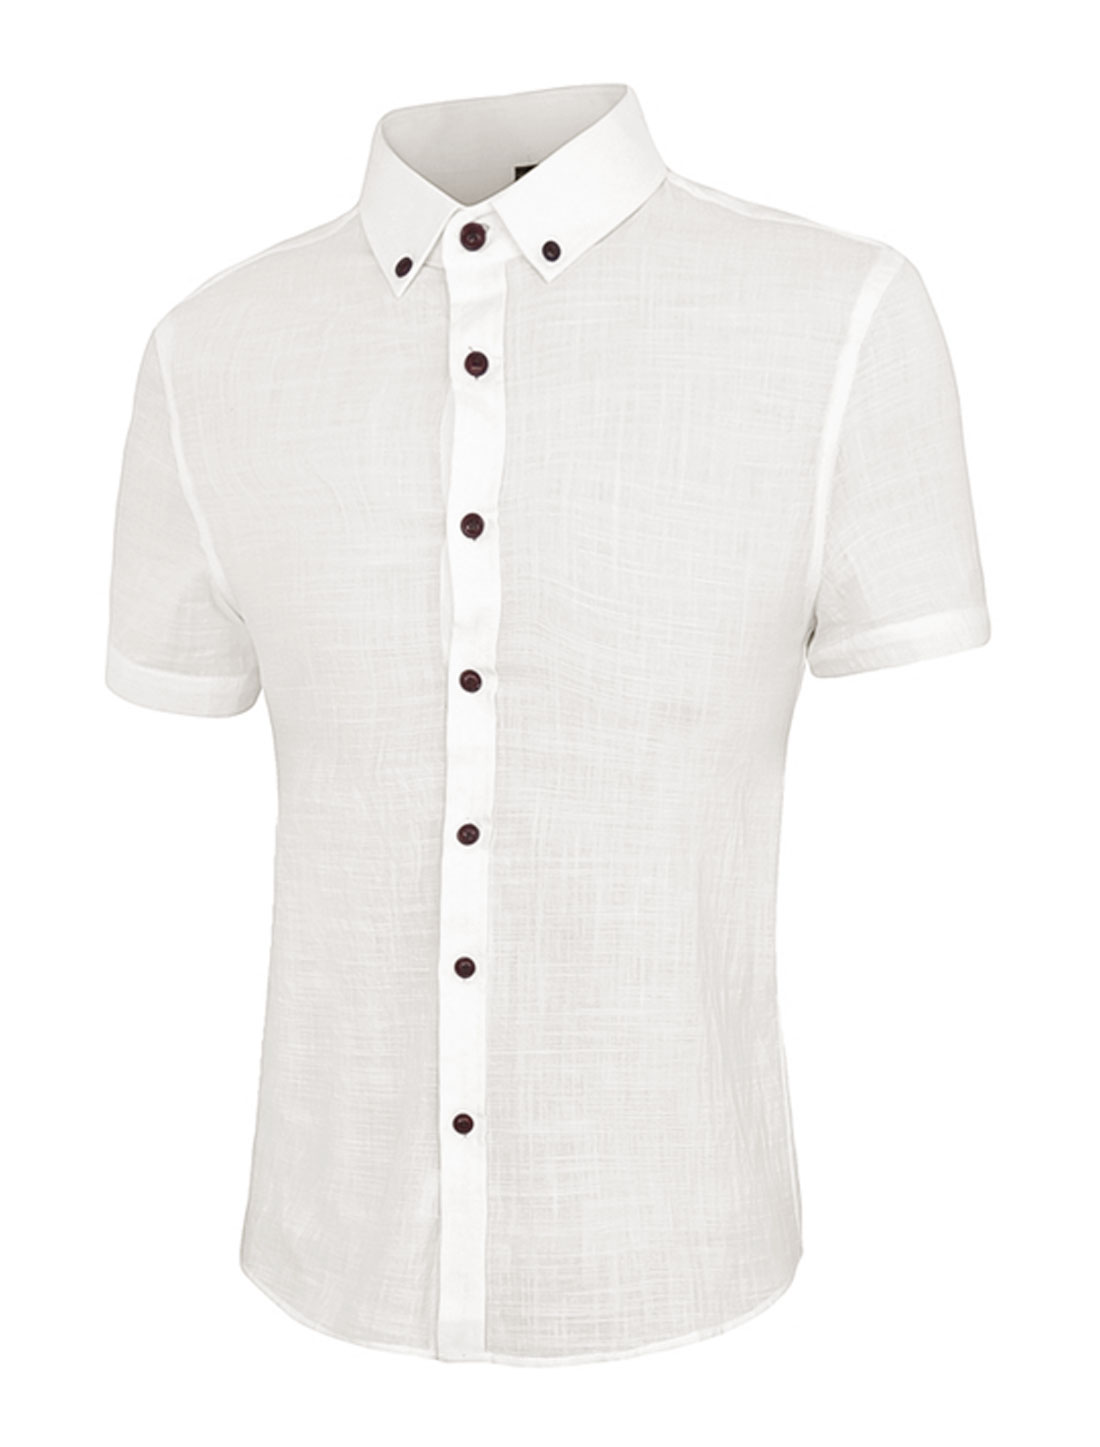 Men Point Collar Short Sleeves Slim Fit Button Down Shirt White M